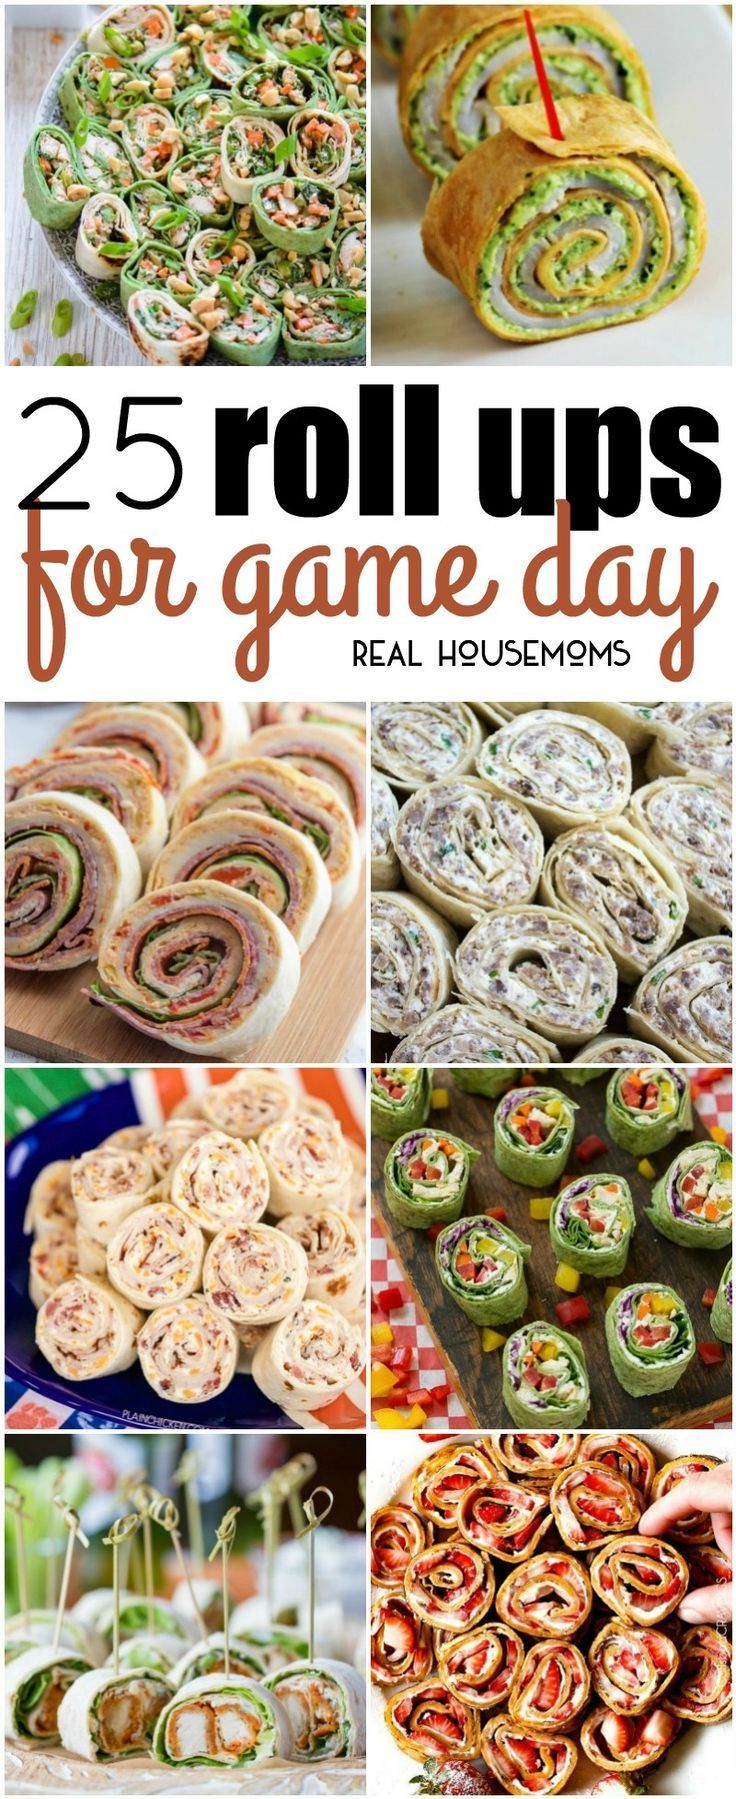 Finger Foods Football Games Pinwheel Appetizers Party Menu Crowd Go Wildnot Sure Why I Didnt Think Of This Sooner